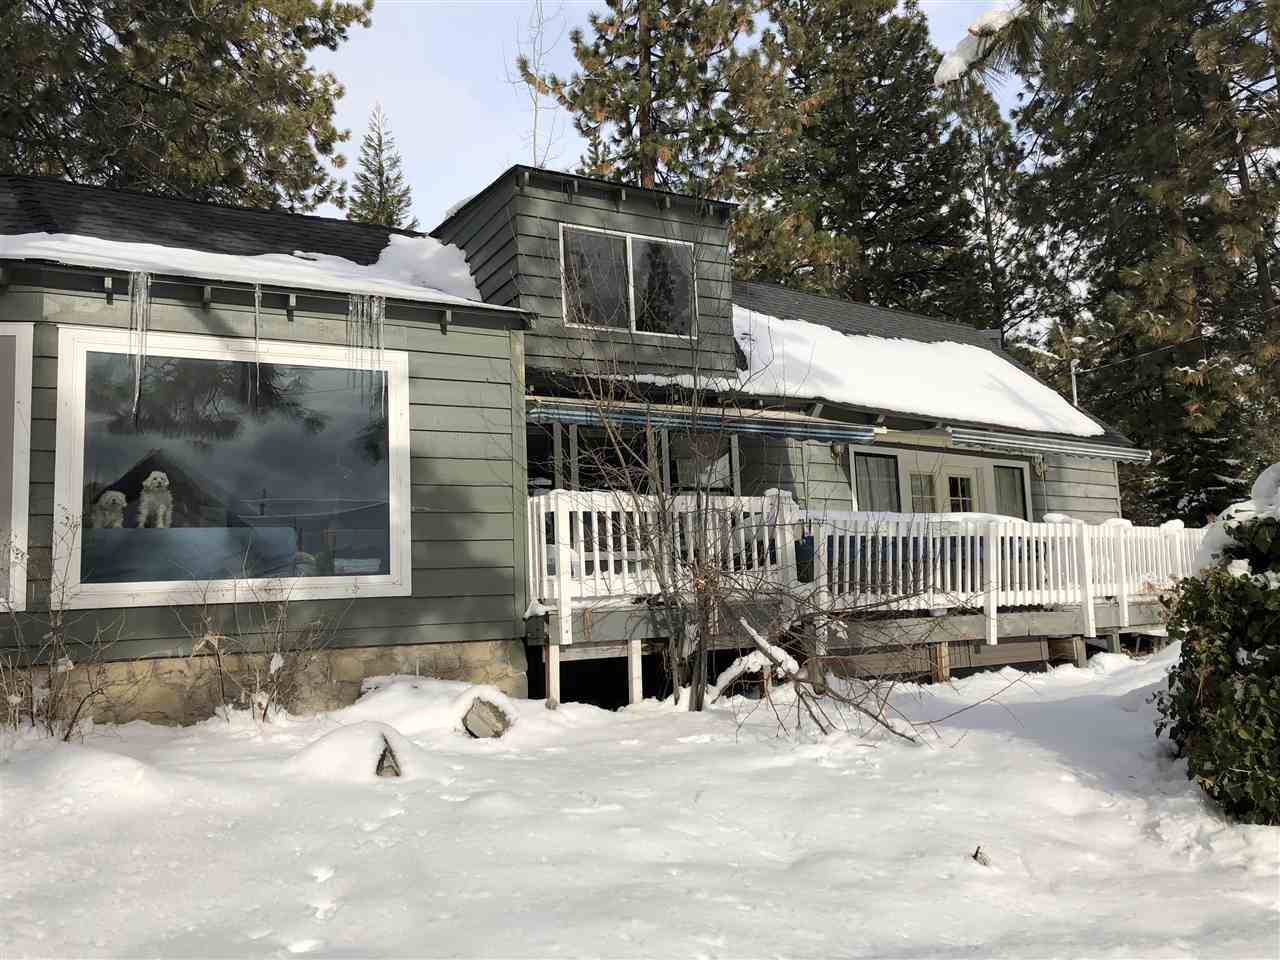 Image for 661 Lakeshore Blvd, Zephyr Cove, NV 89448